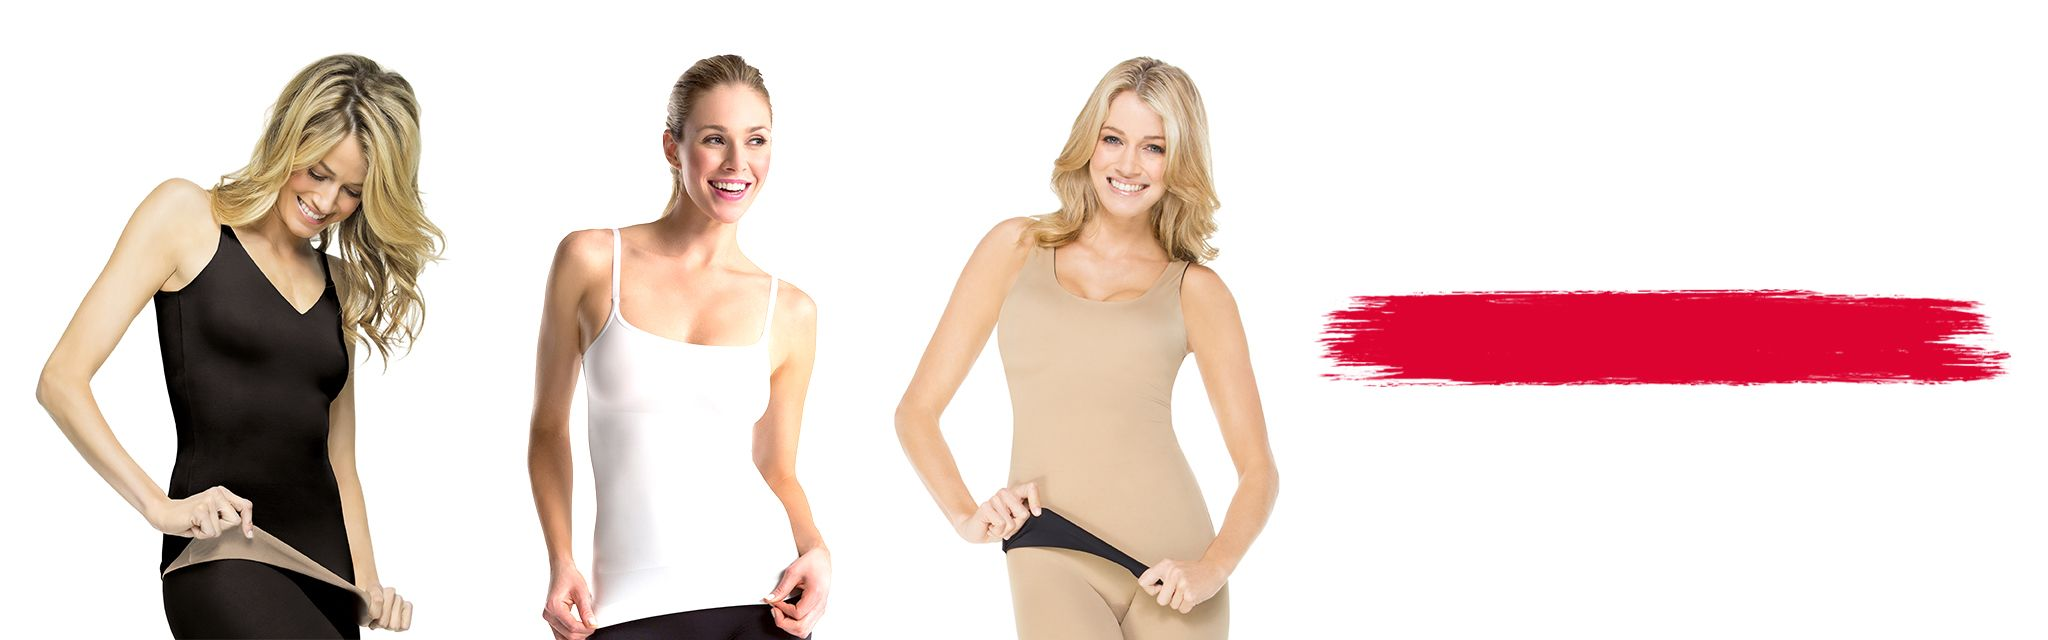 3 Spanx Models Wearing Shaping Tops